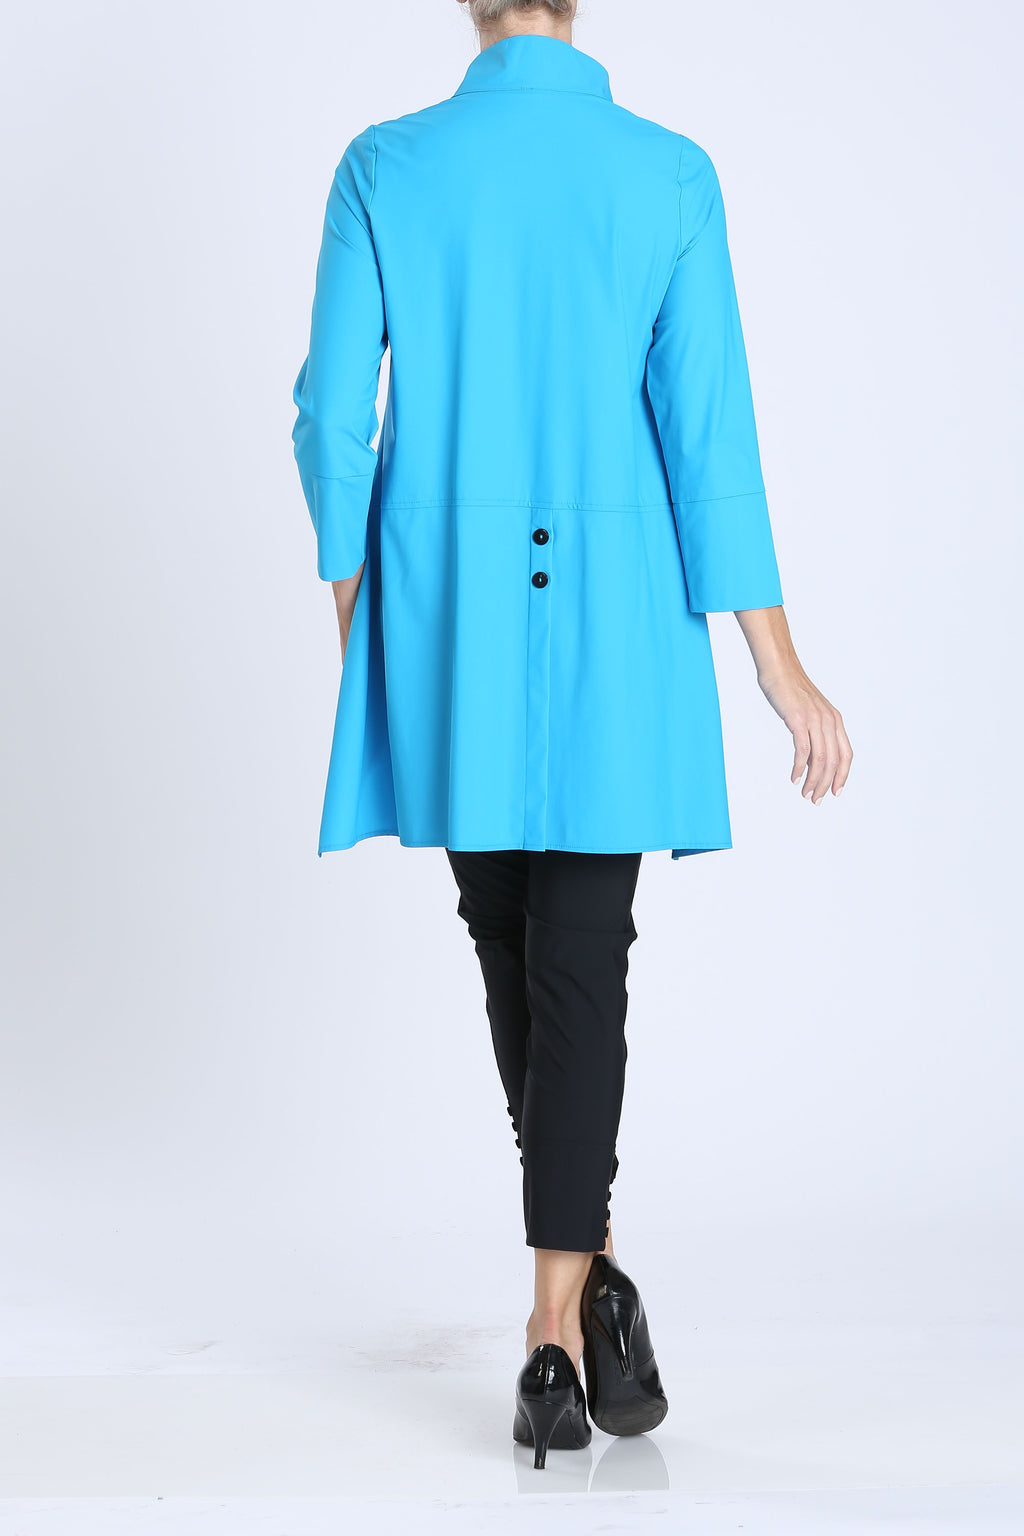 Turquoise Button-Front Collar Jacket